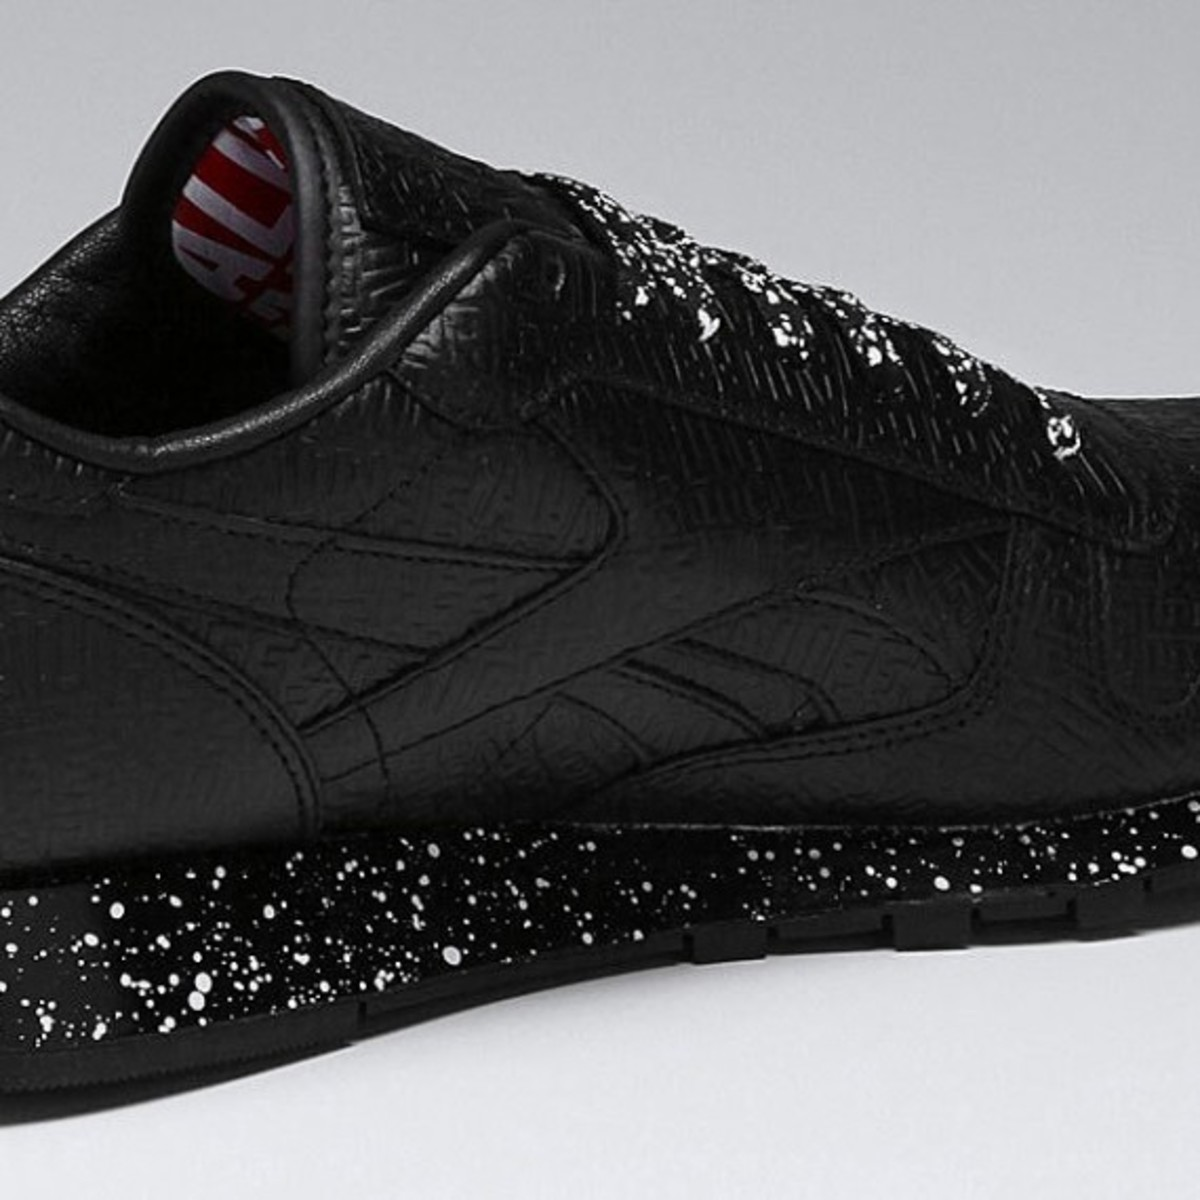 alife-reebok-classic-leather-lux-black-speck-05